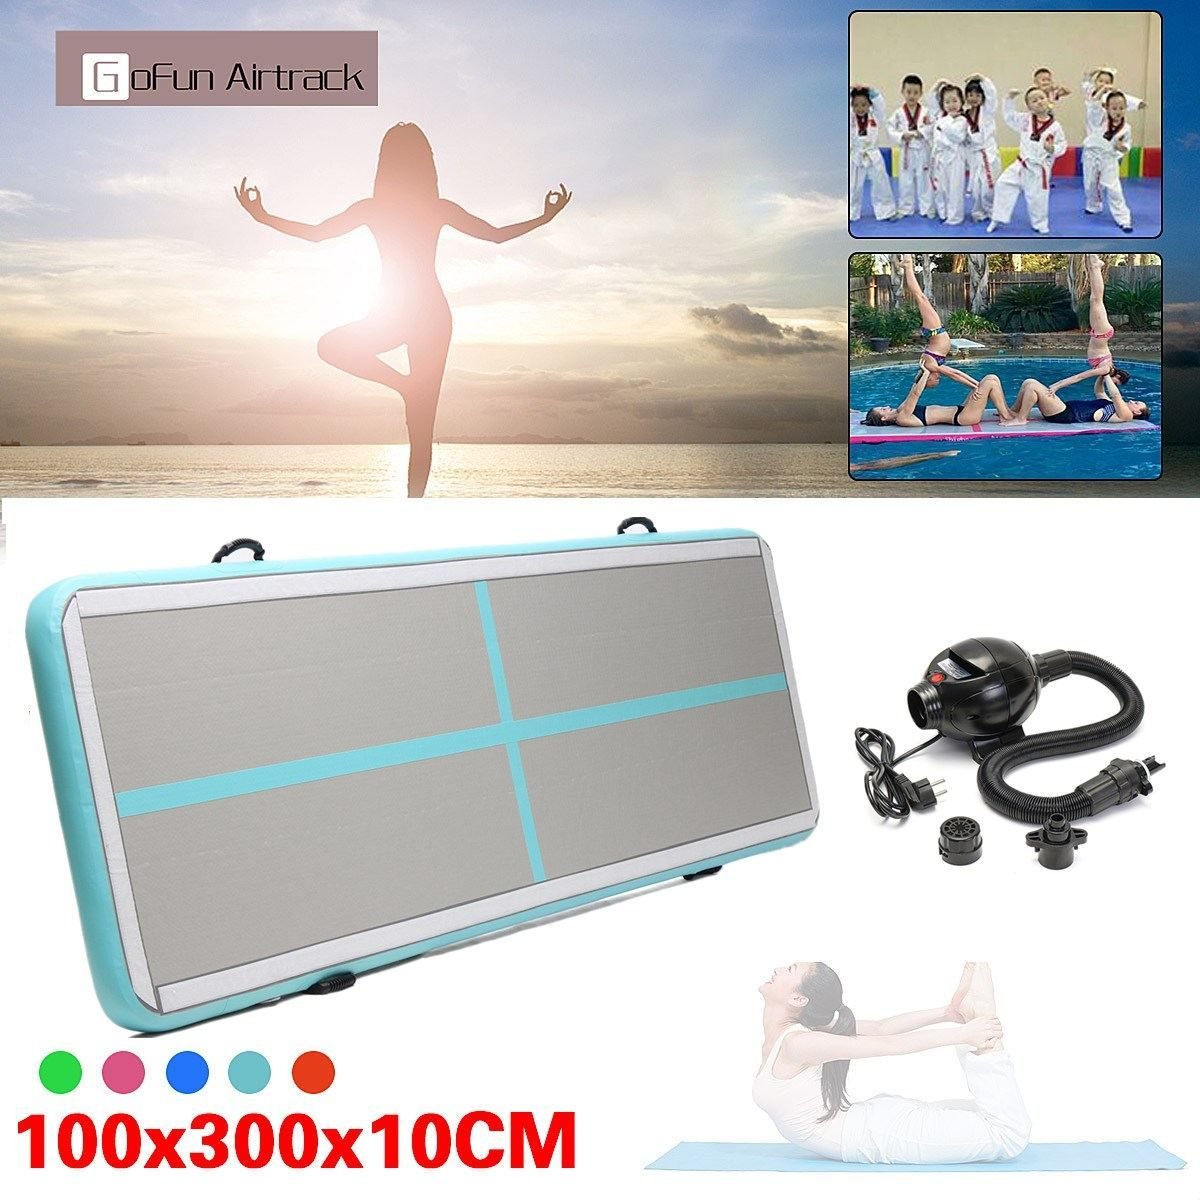 Newest 100x300x10cm Inflatable Tumble Track Trampoline Air Track Taekwondo Gymnastics Inflatable Air Mat